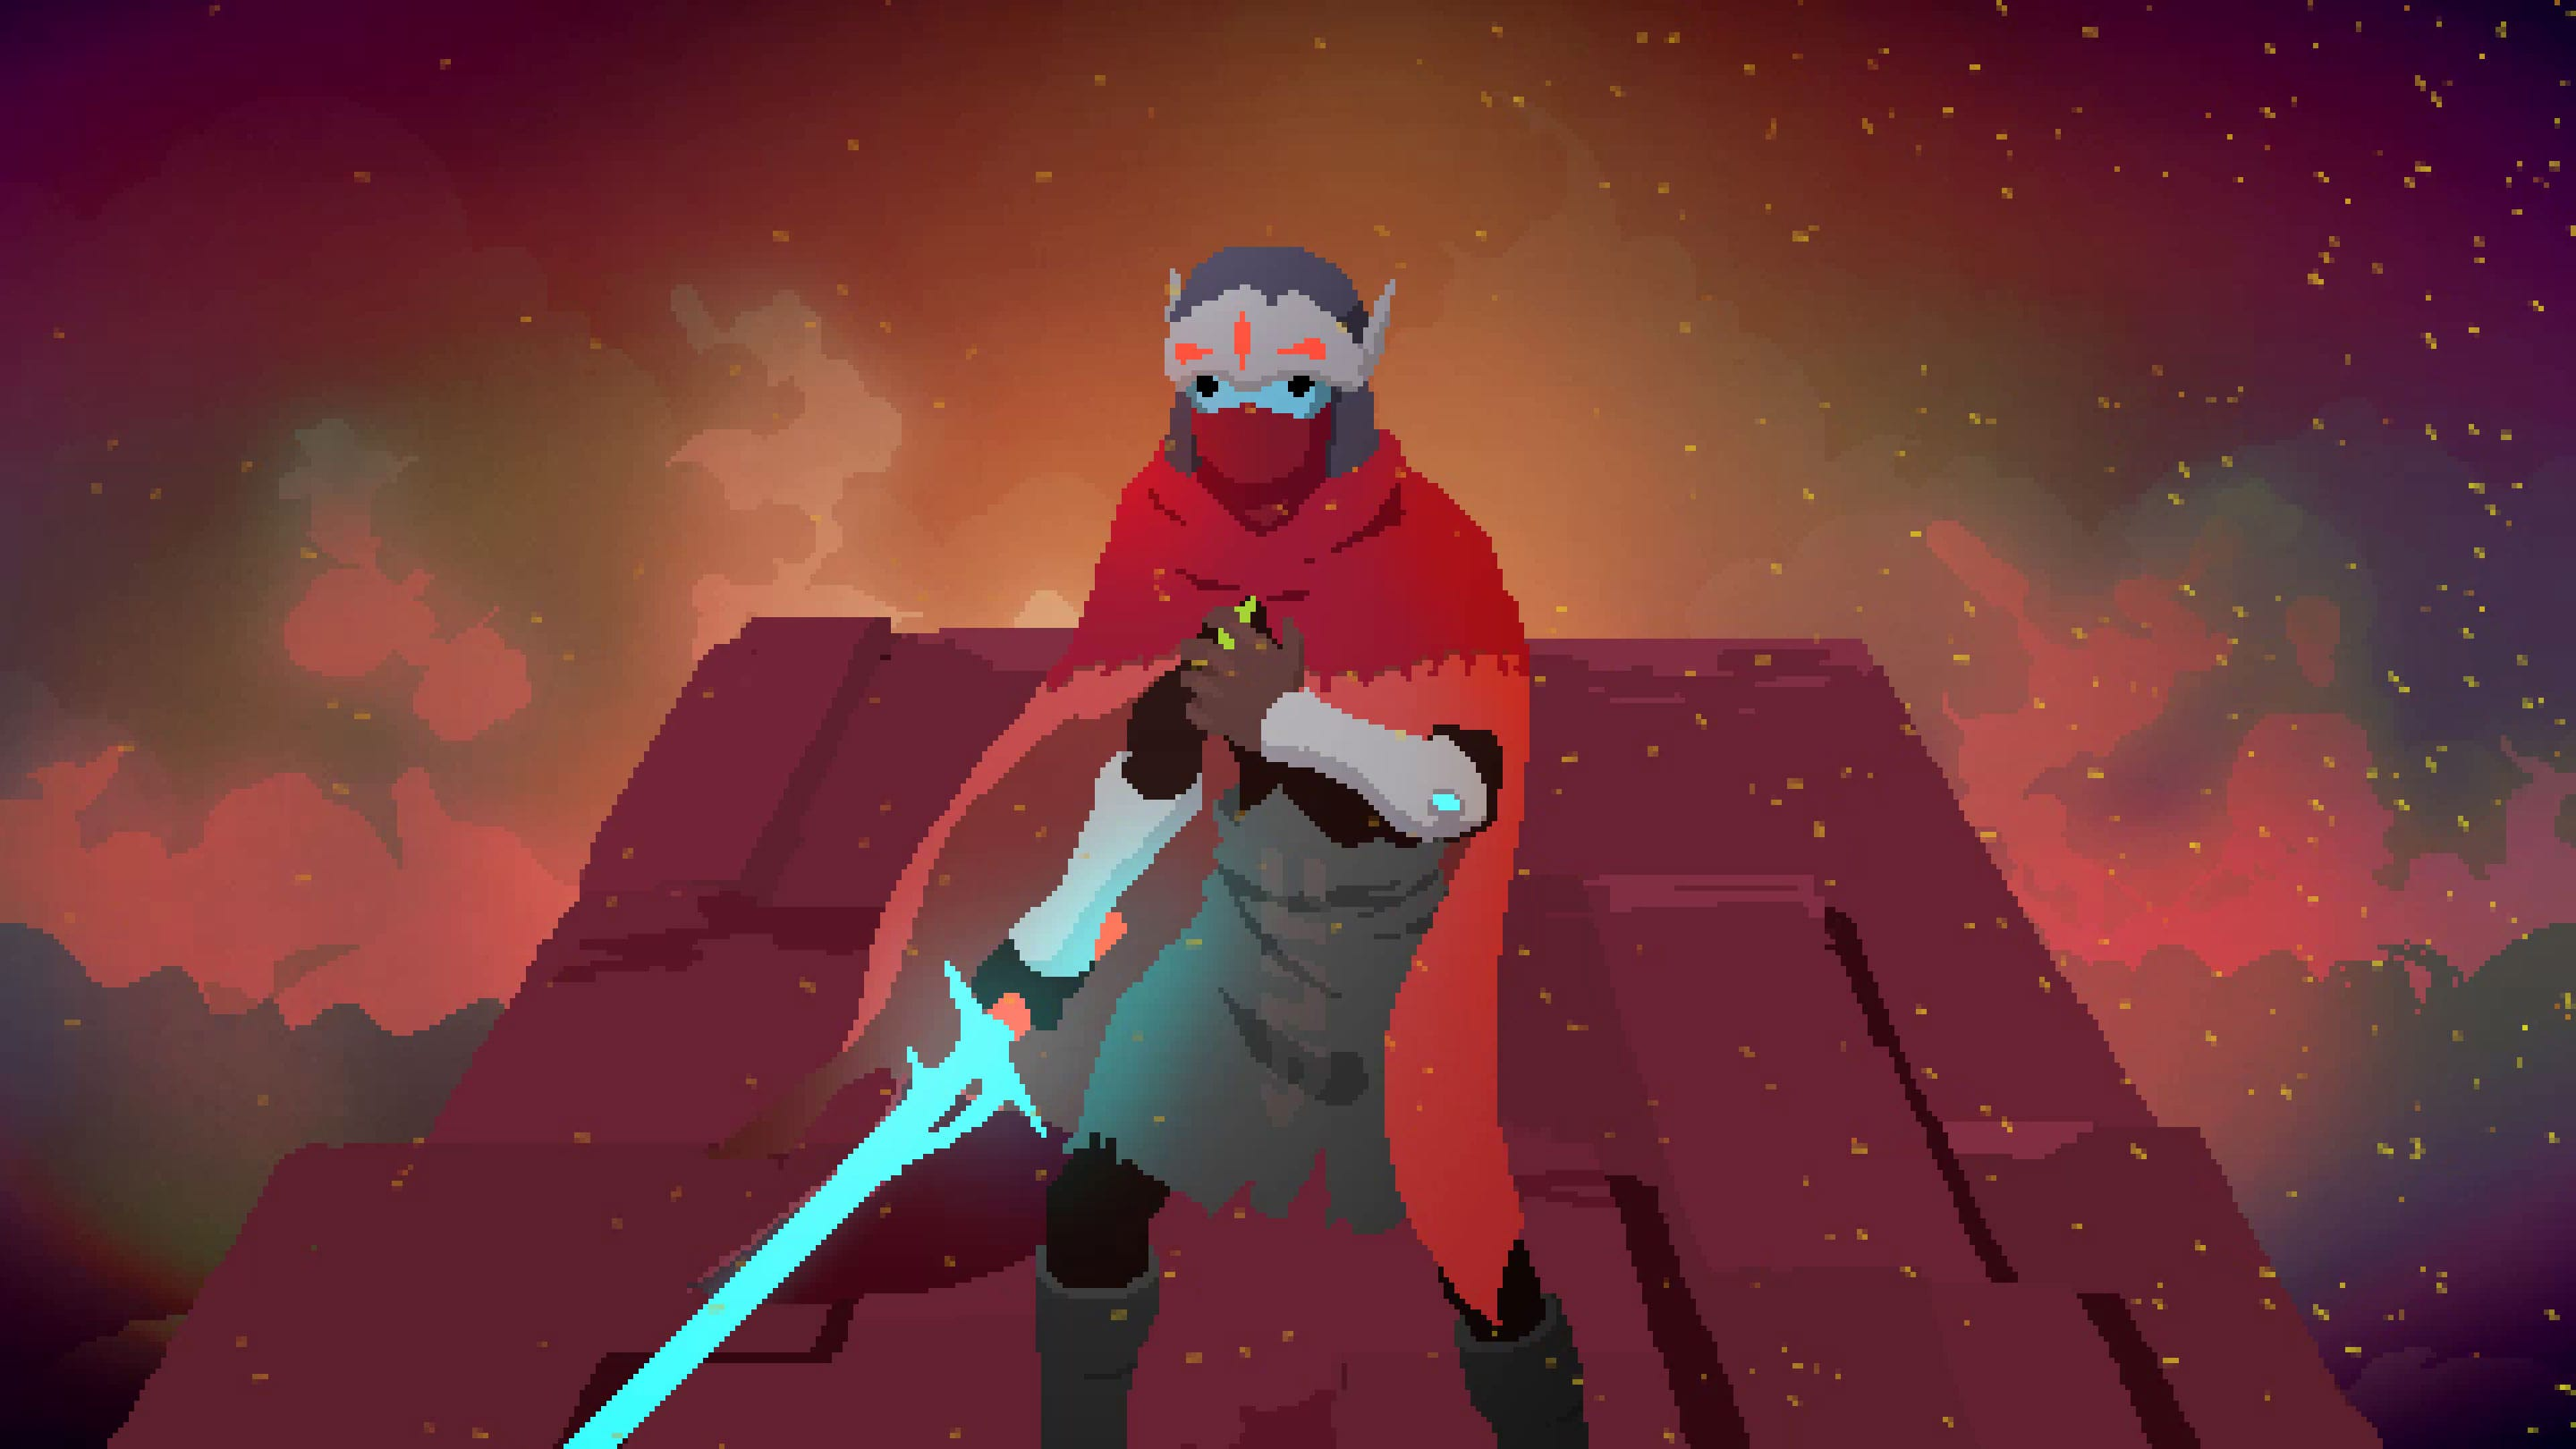 Hyper Light Drifter Background